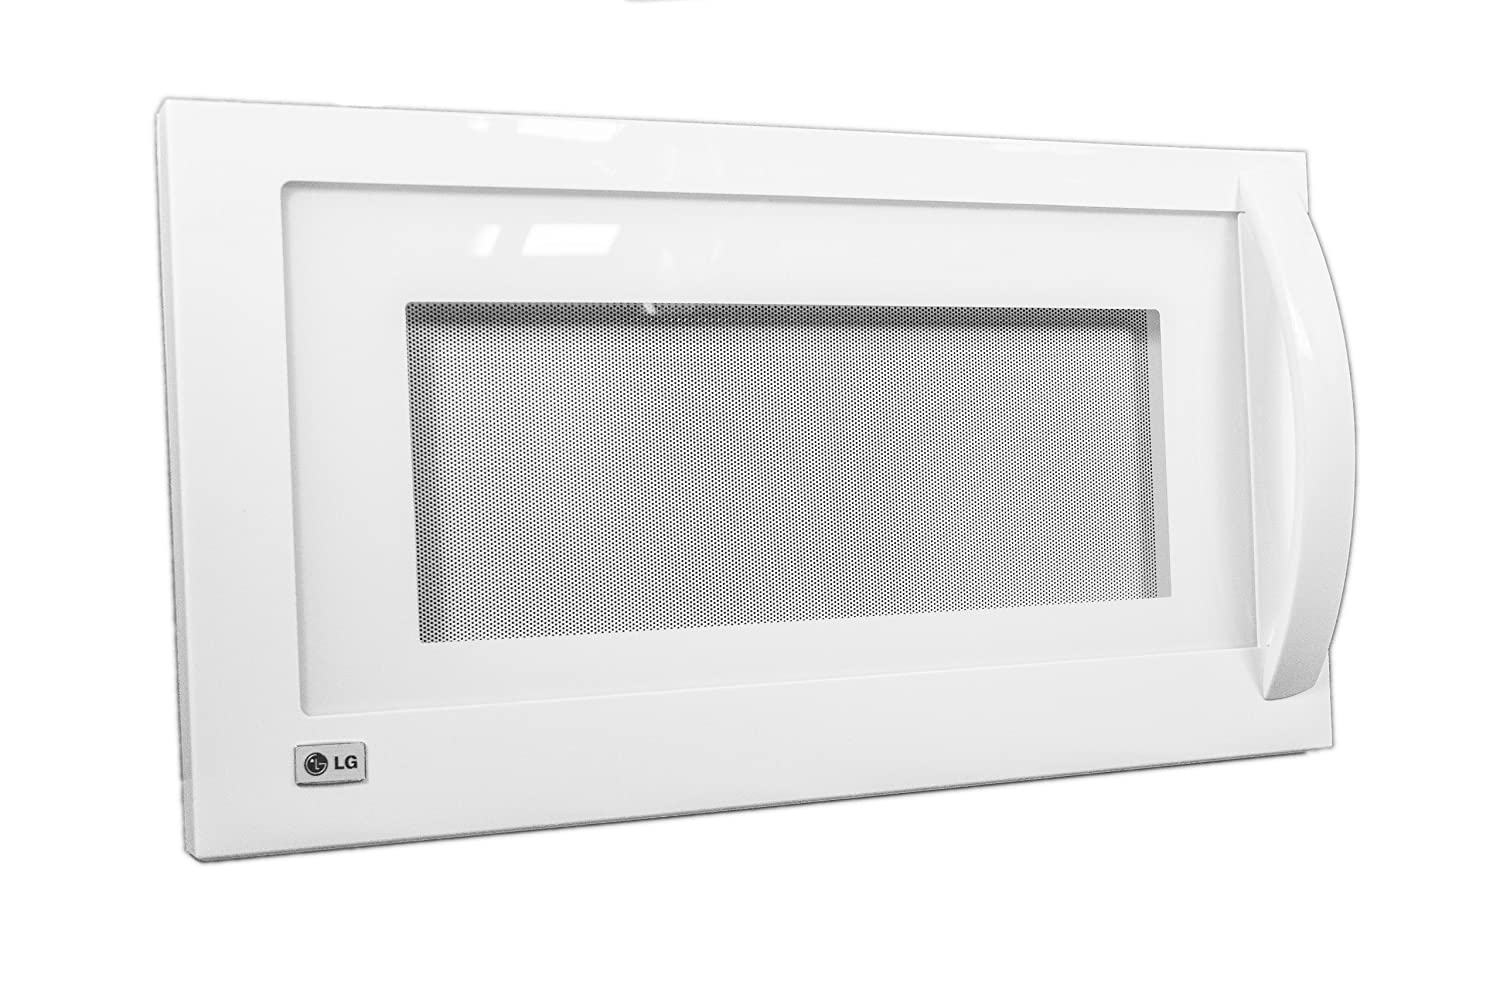 LG Electronics ADC49436904 Microwave Oven Door Assembly, White